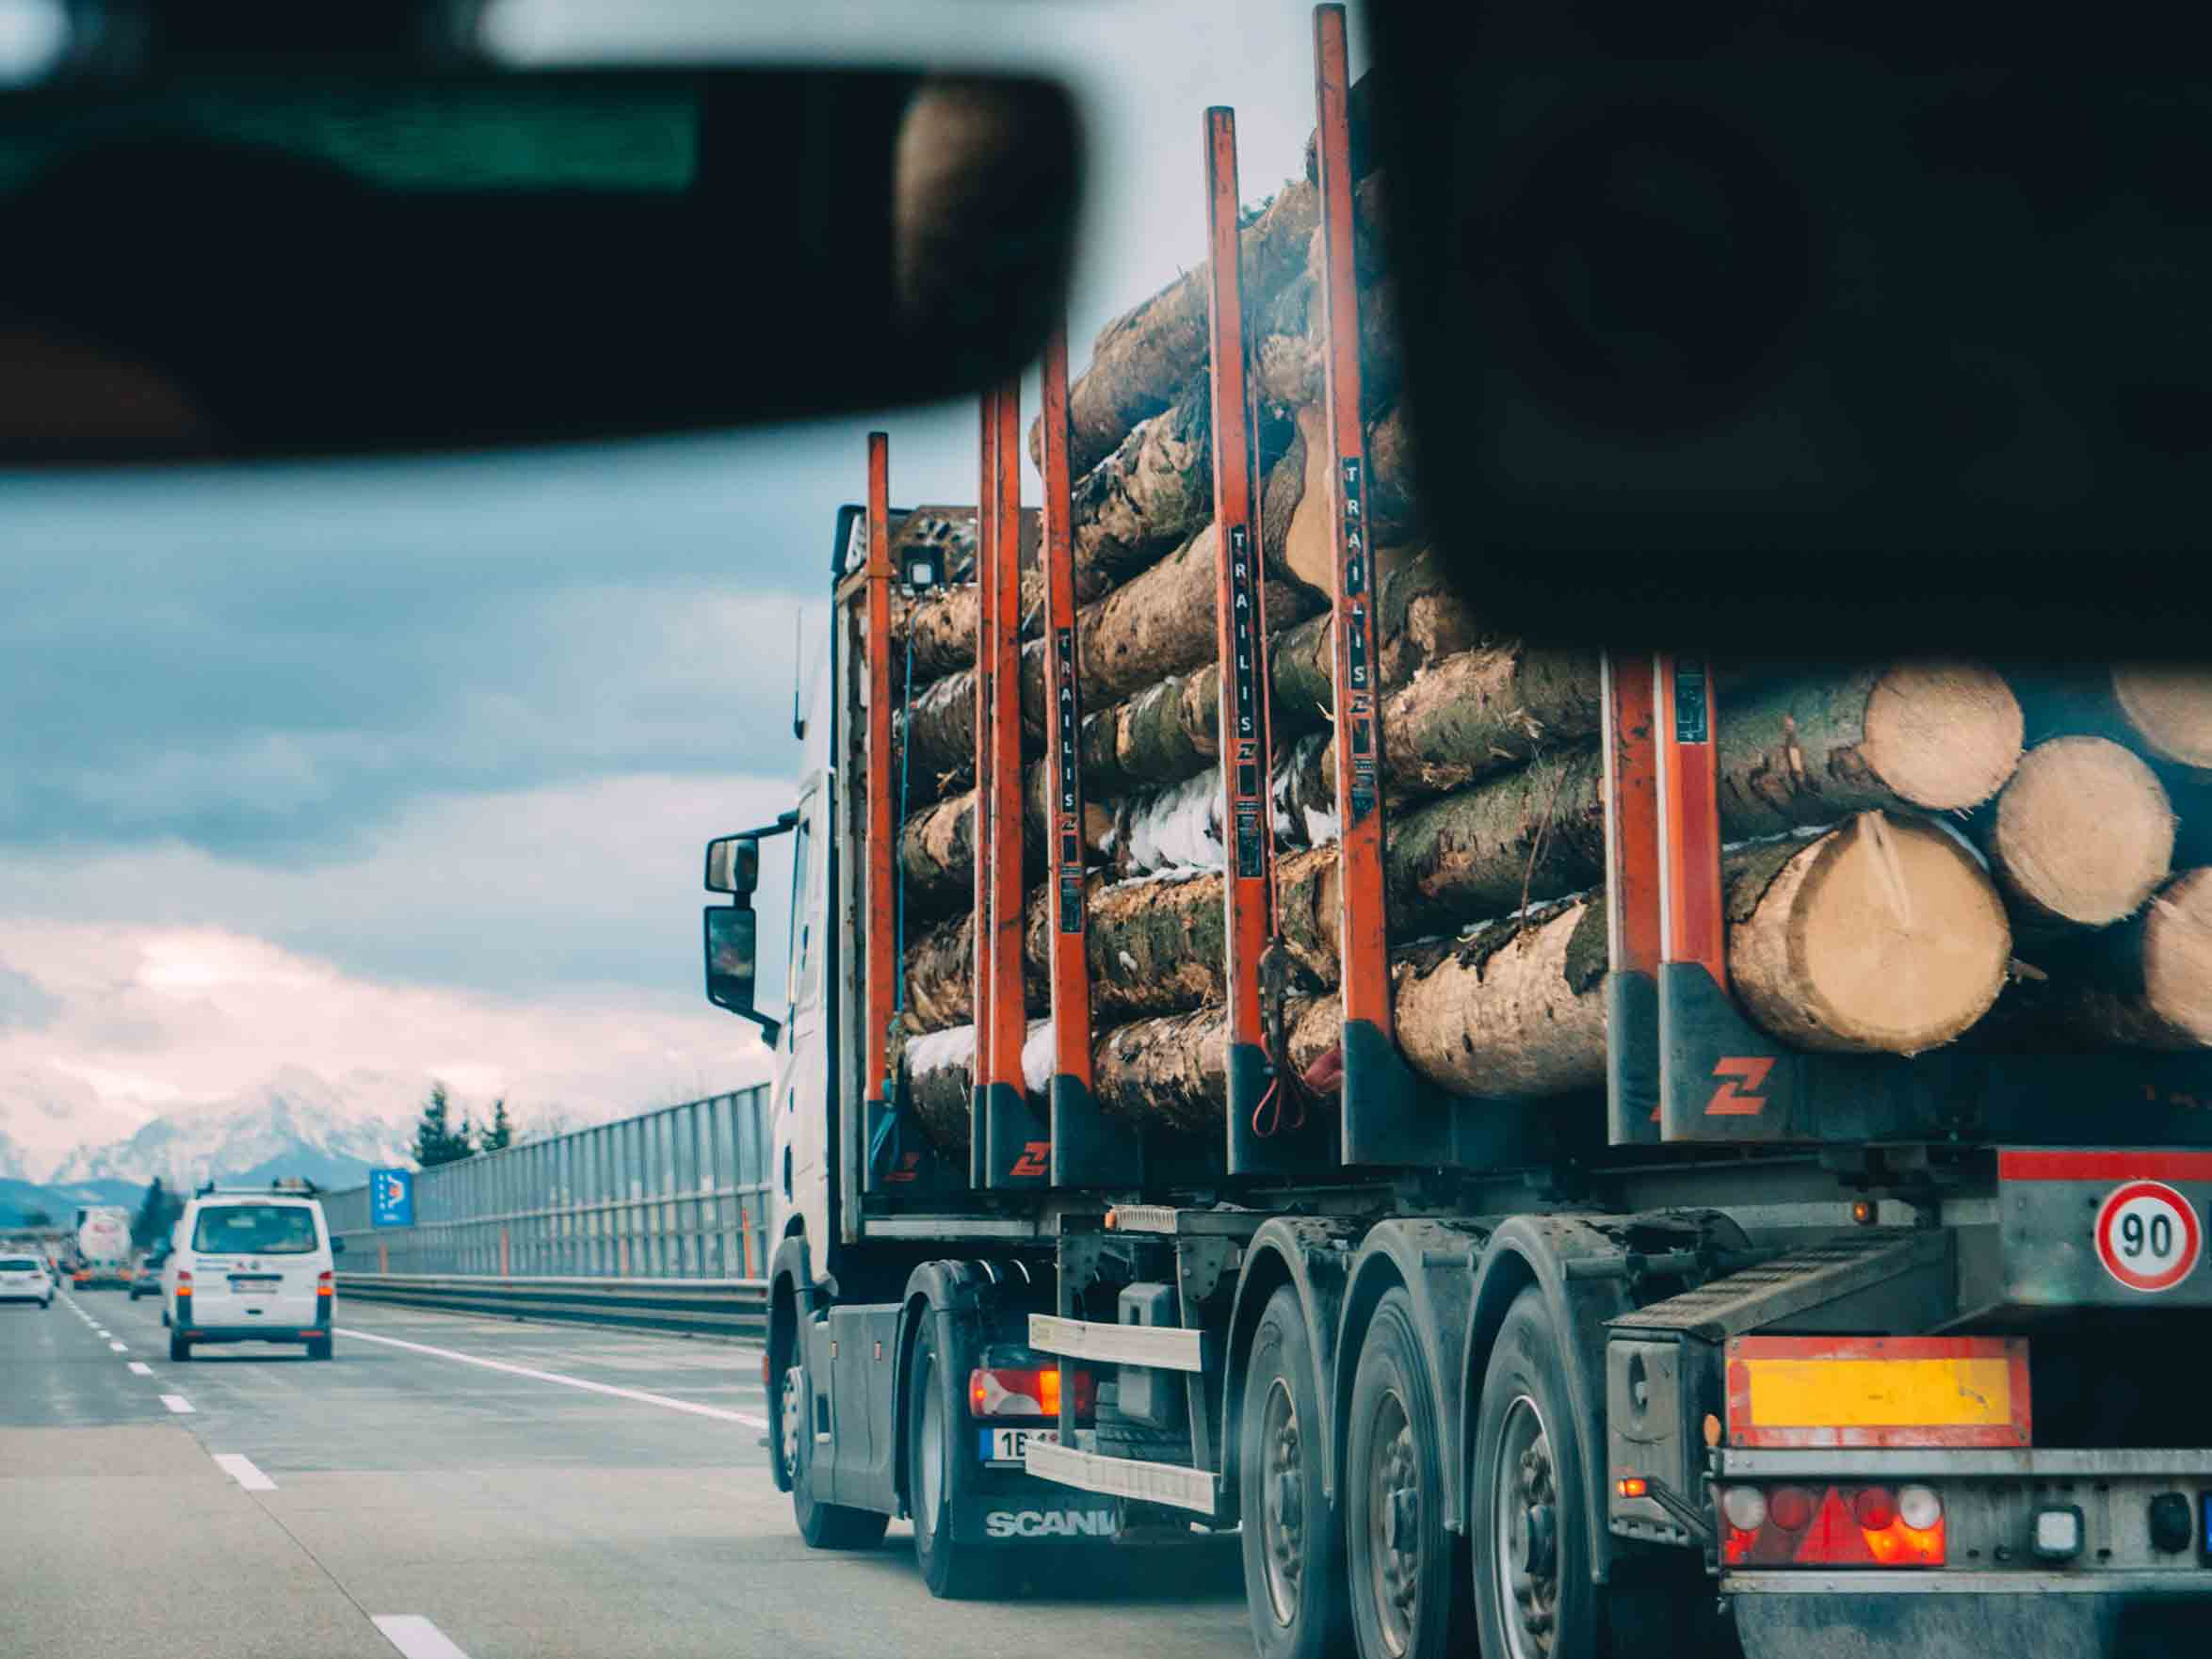 truck carrying logs of wood on the highway